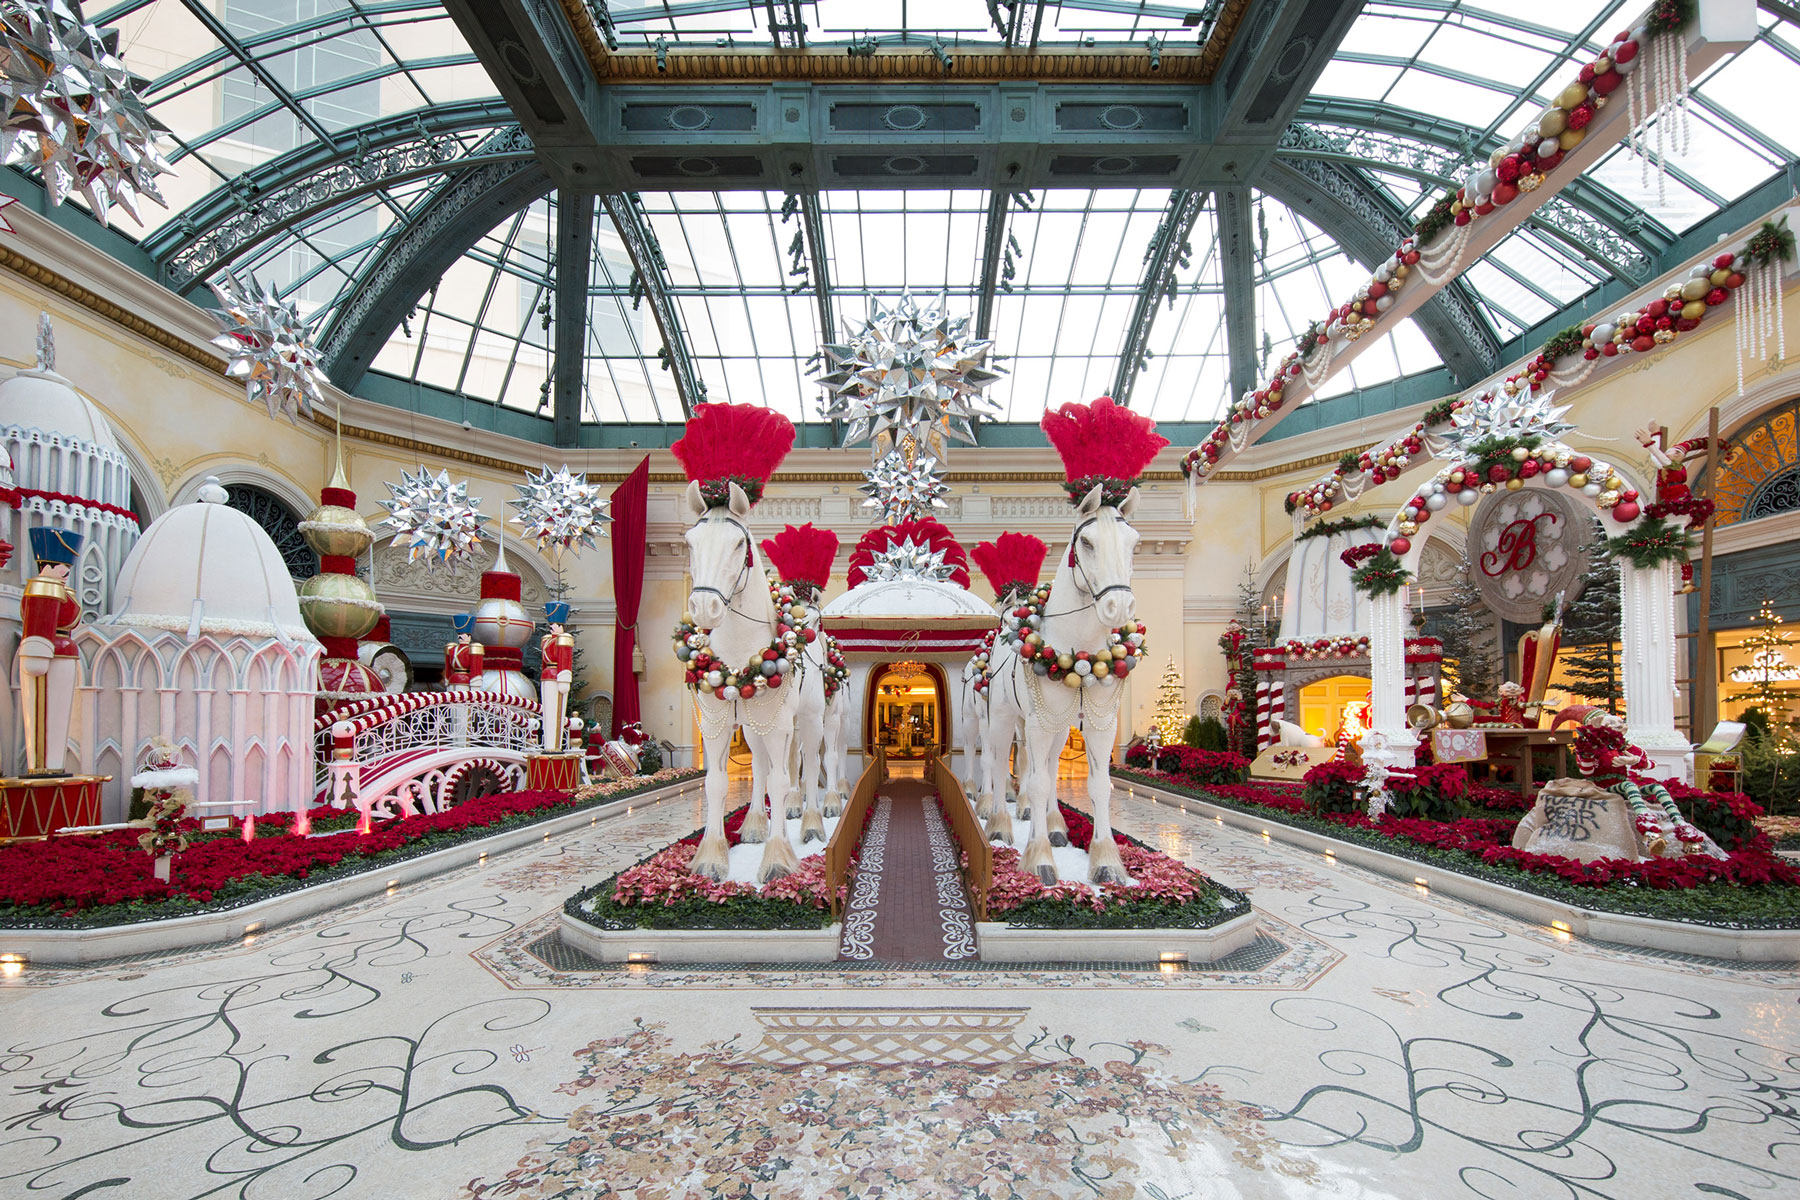 Bellagio Hotel and Casino holiday decor